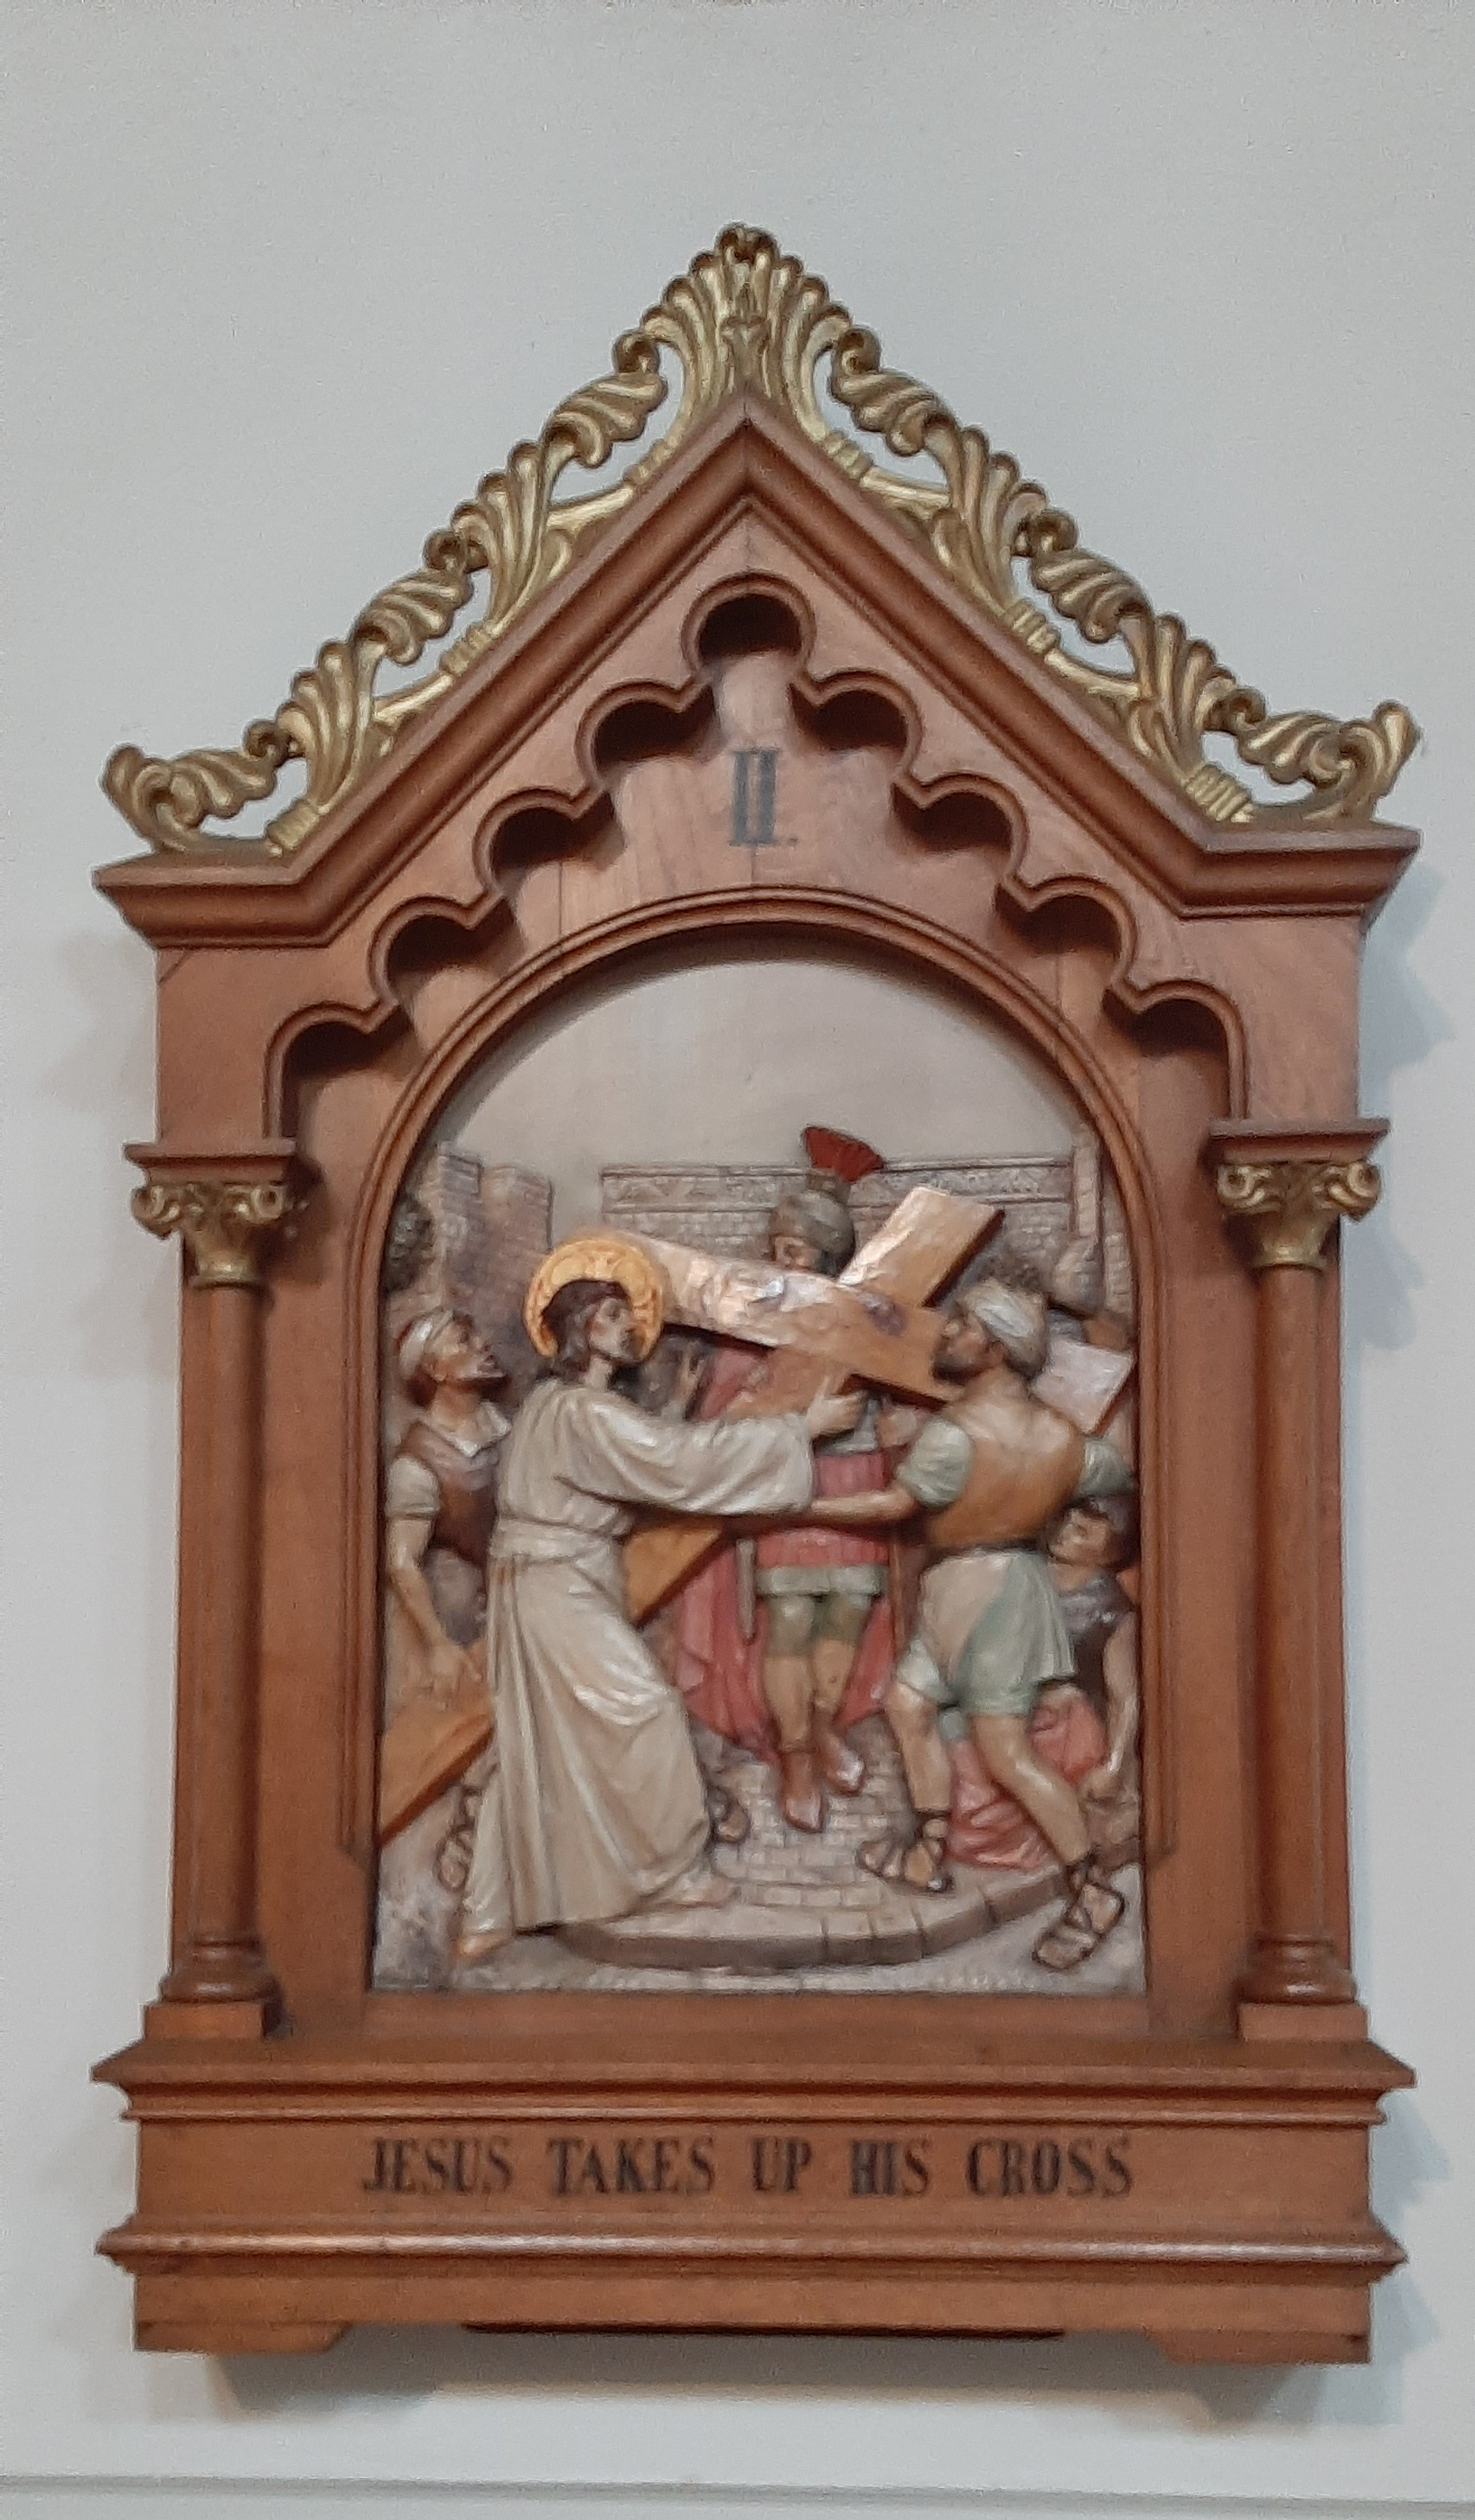 Thirteenth Station: The body of Jesus is taken down from the Cross.